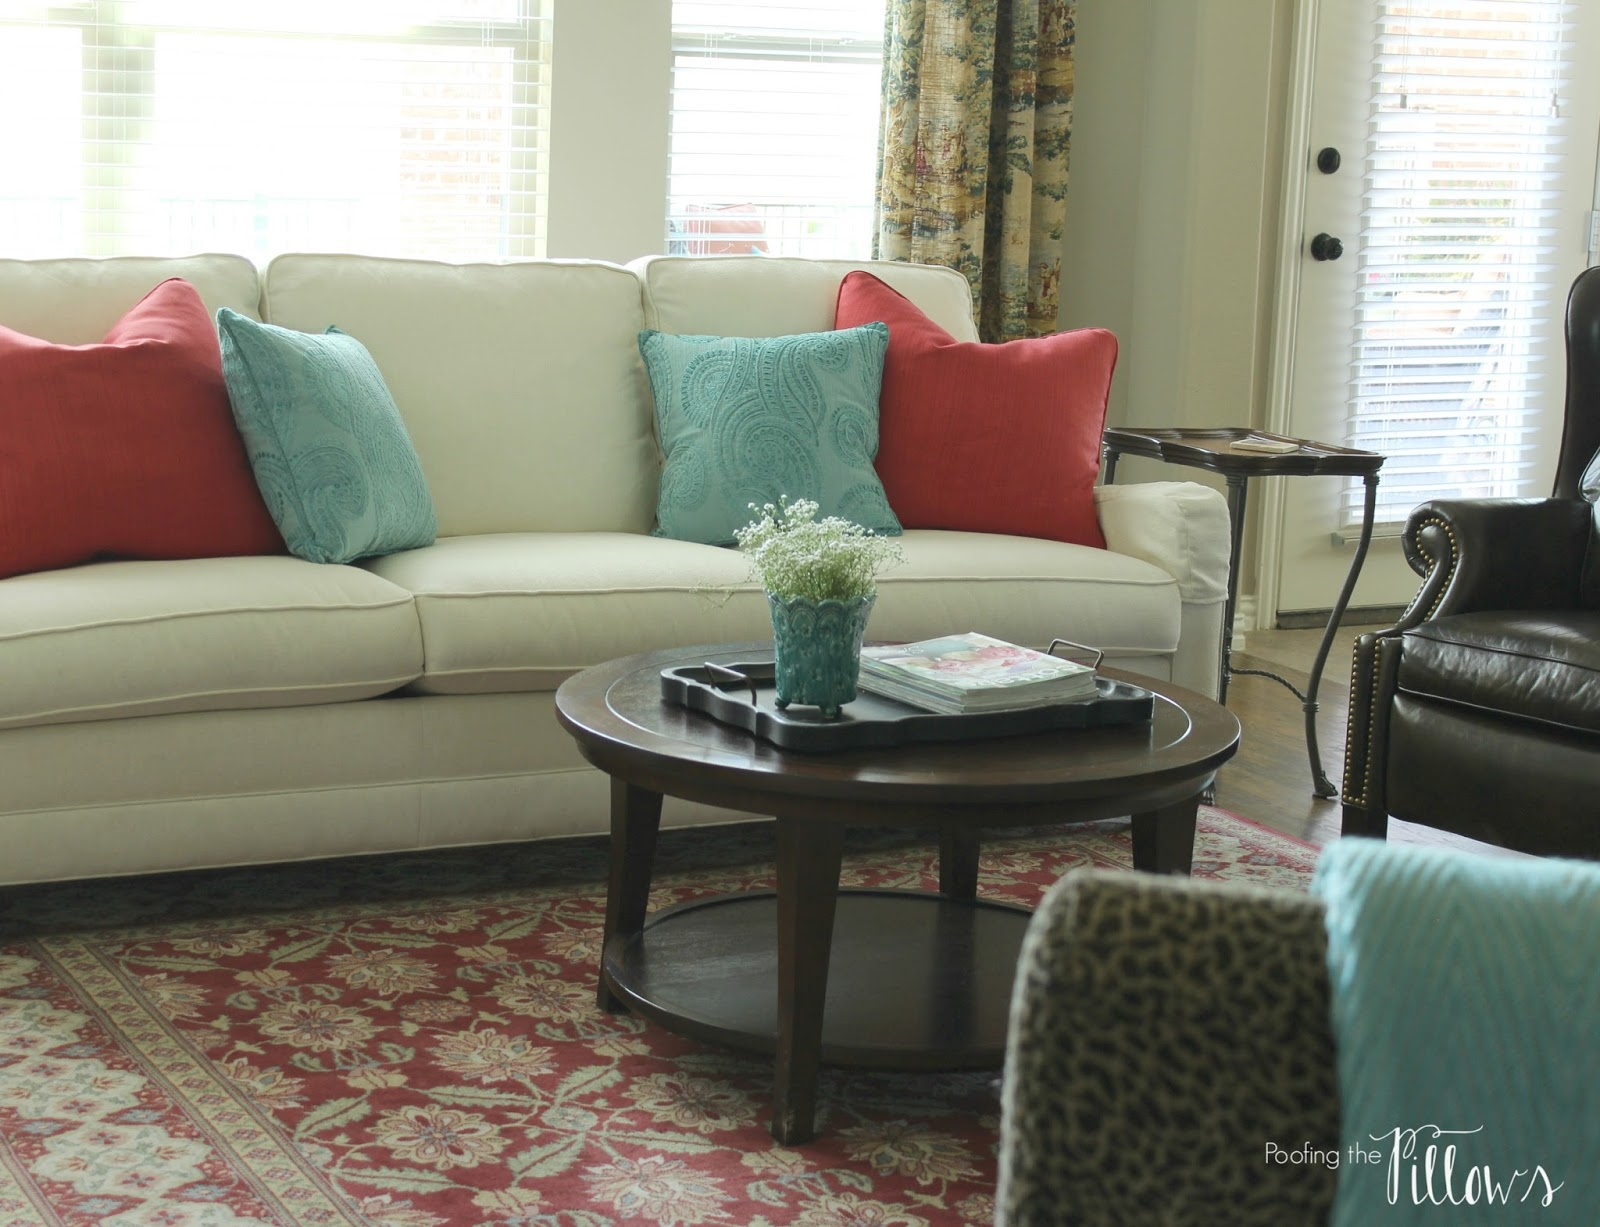 Adding Robinu0027s Egg Blue To Our Family Room At Poofing The Pillows.